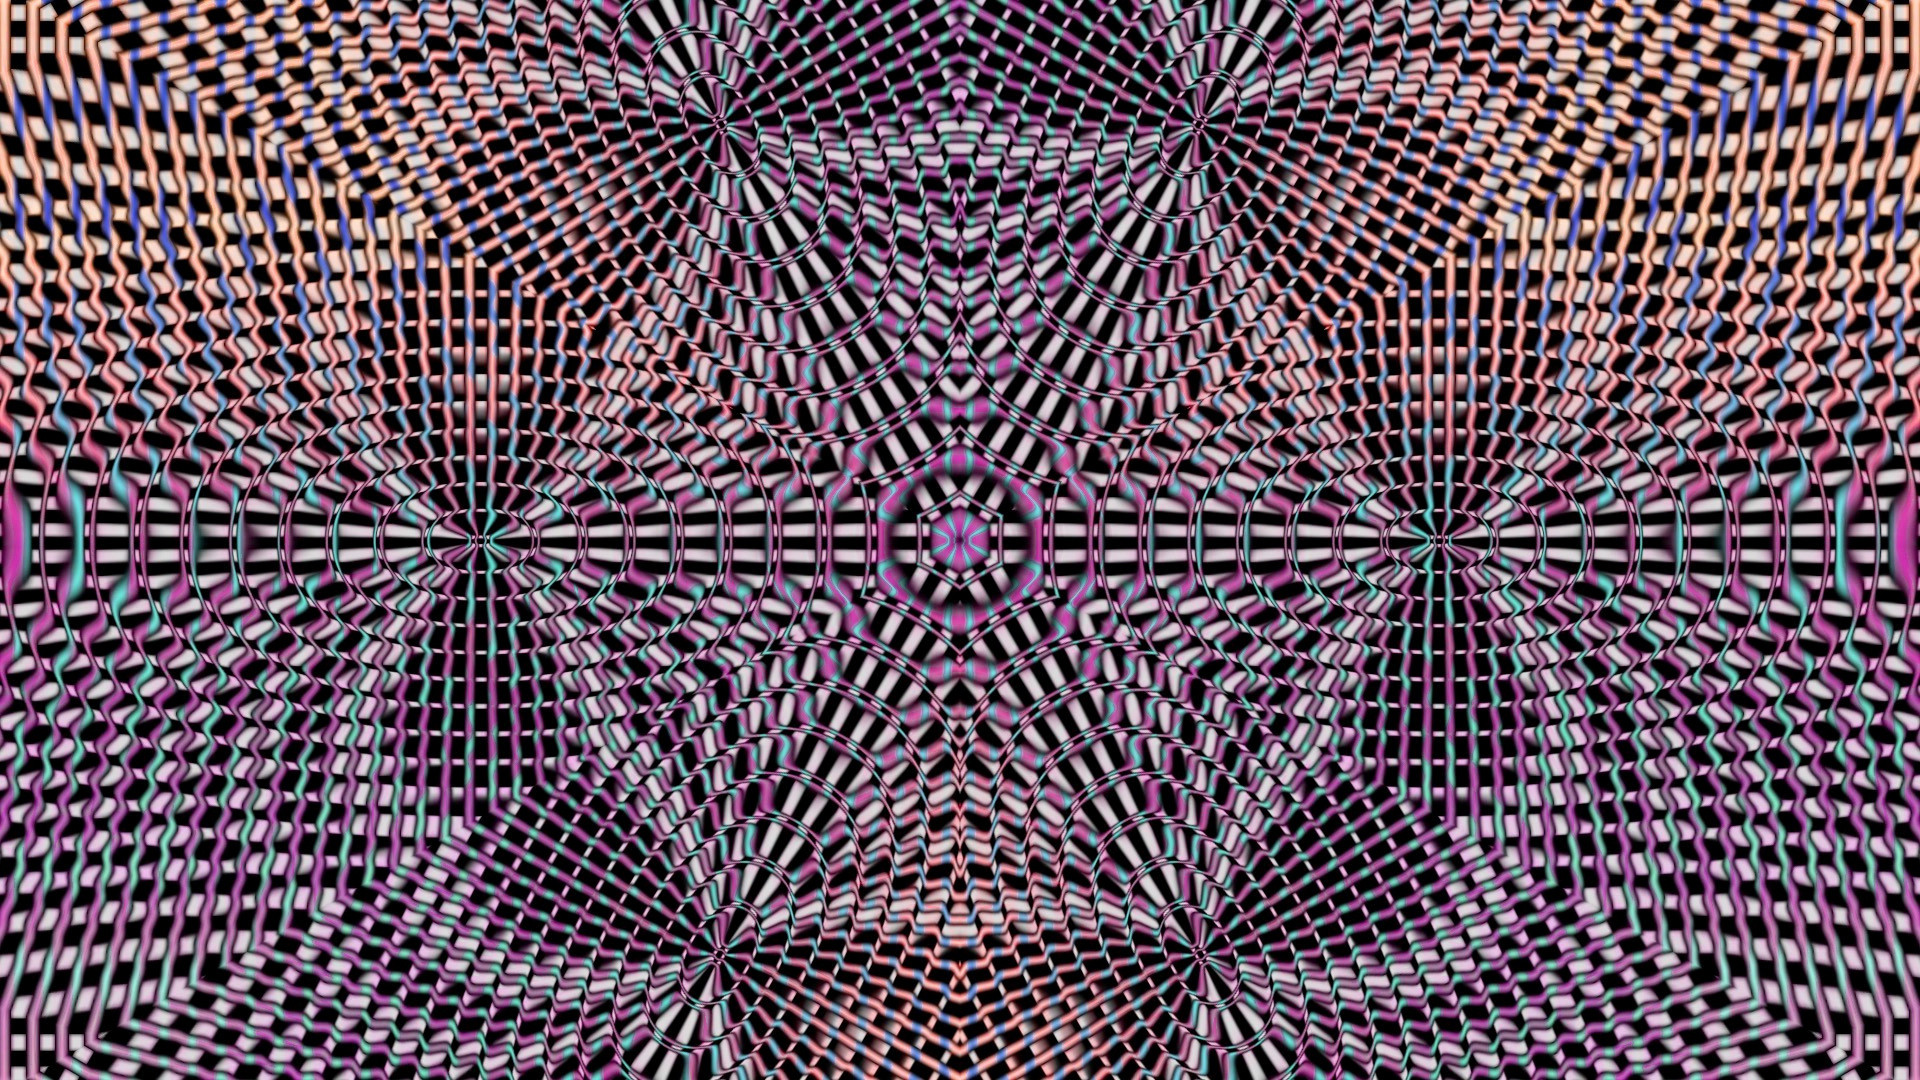 Res: 1920x1080, Illusion Wallpaper Inspirational Square Rays Optical Illusion Teaser  Psychedelic Wallpaper